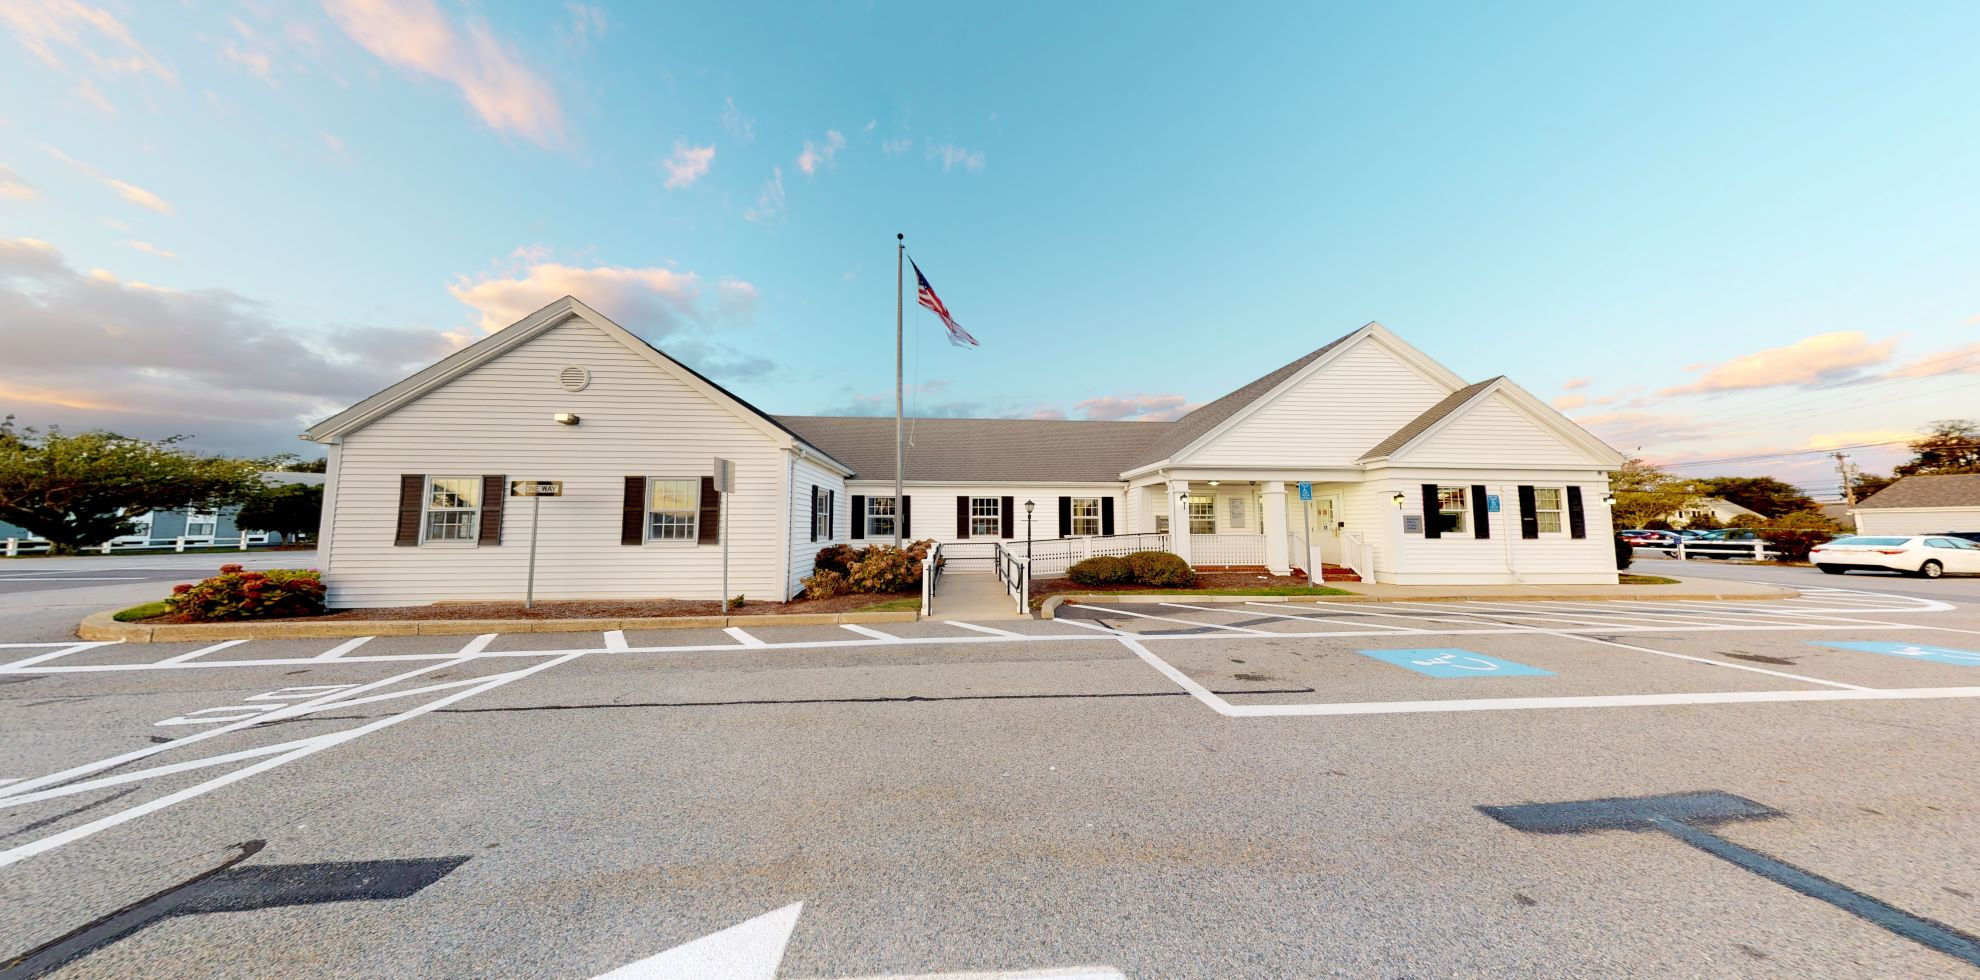 Bank of America financial center with drive-thru ATM and teller | 1326 Main St, South Yarmouth, MA 02664